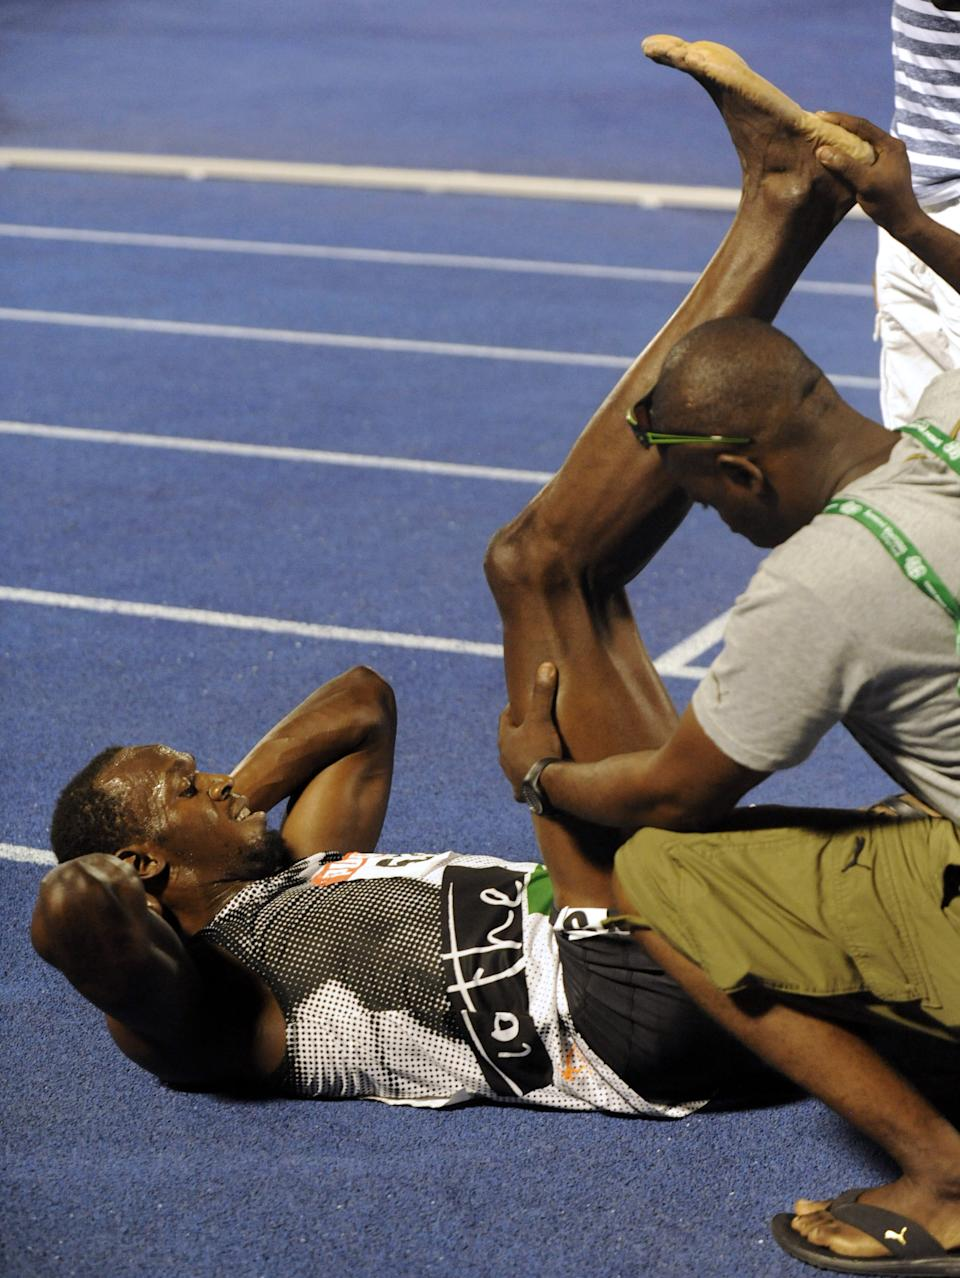 World-record holder Usain Bolt gets his right hamstring stretched out after loosing to fellow country man Yohan Blake in the 200m final at Jamaica's Olympic trials in Kingston, Jamaica, Sunday, July 1, 2012.  Blake edged Bolt by 0.03 finishing in 19.80 seconds. (AP Photo/Collin Reid)